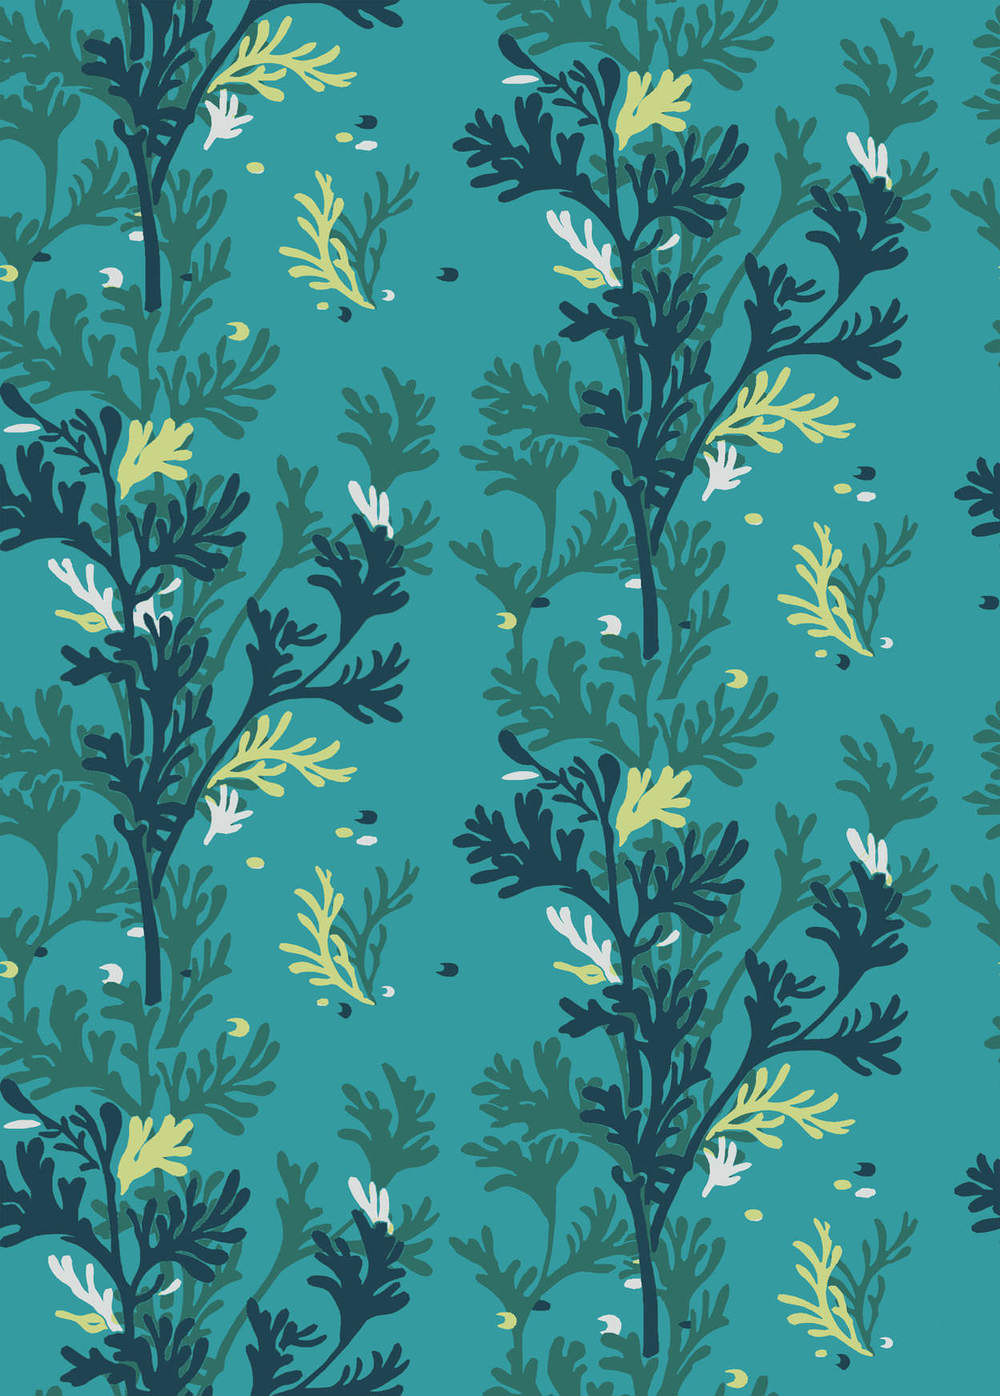 seaweed fabric in blue.jpg